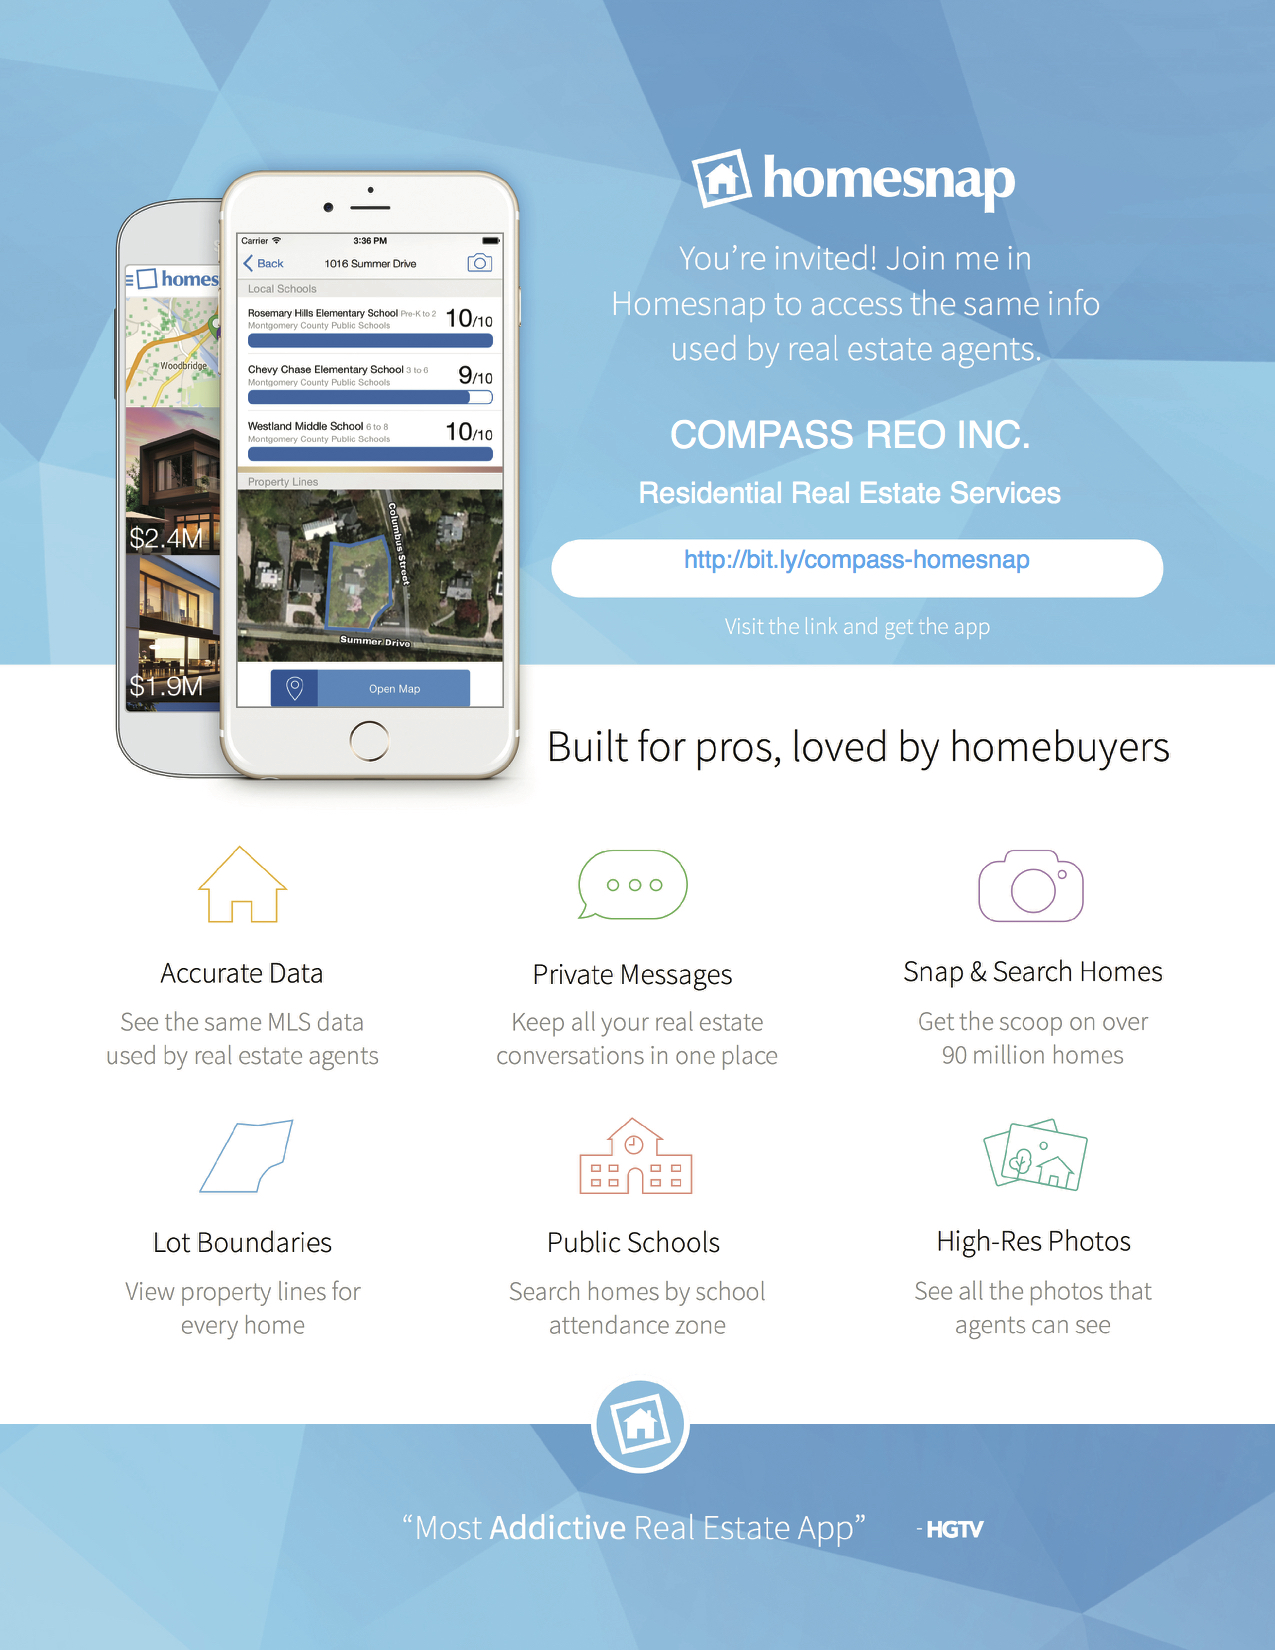 Have You Tried Homesnap Yet?